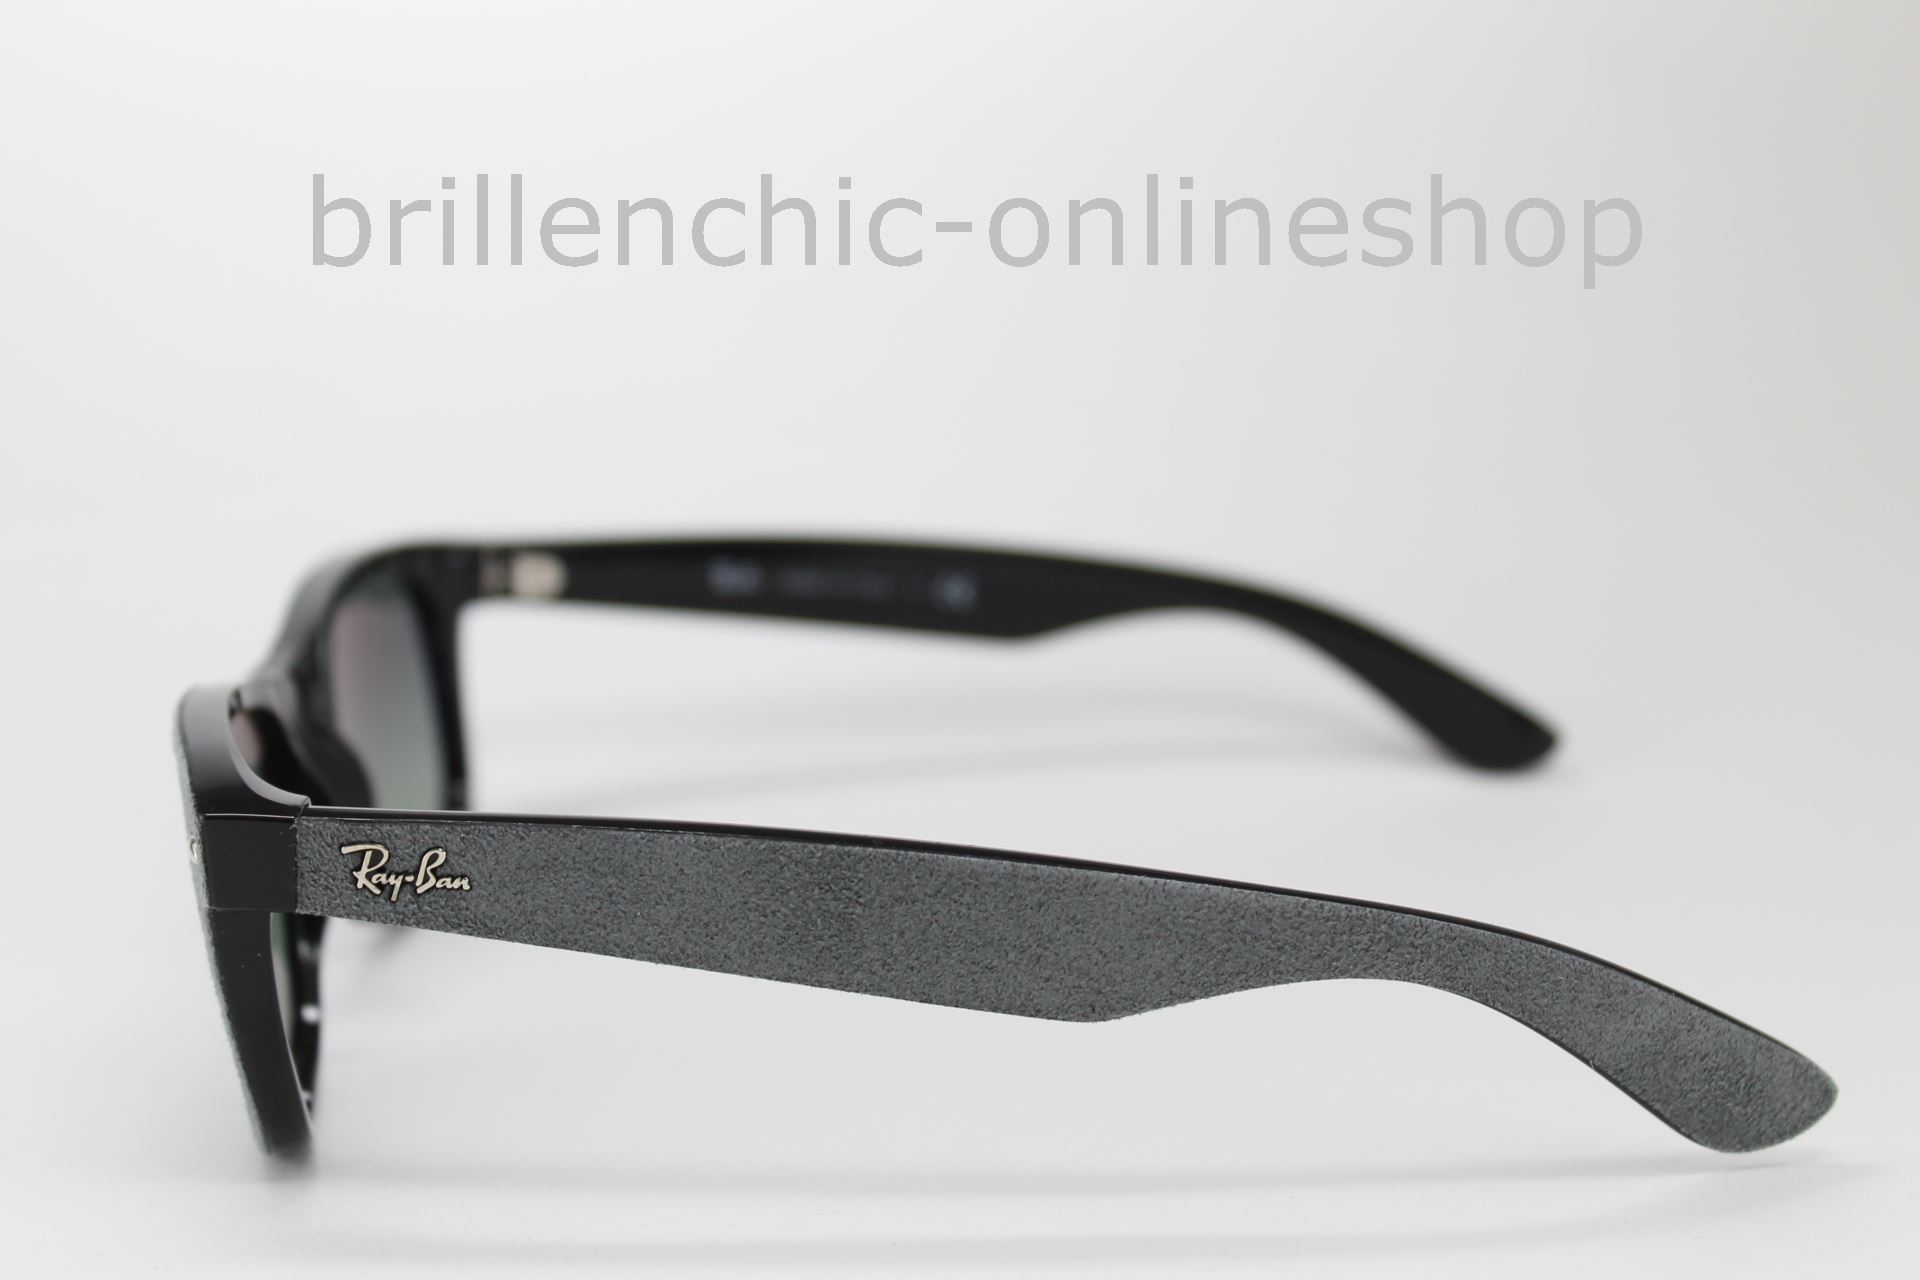 14126a61f7fd8 Brillenchic-onlineshop in Berlin - Ray Ban NEW WAYFARER RB 2132 6241 ...